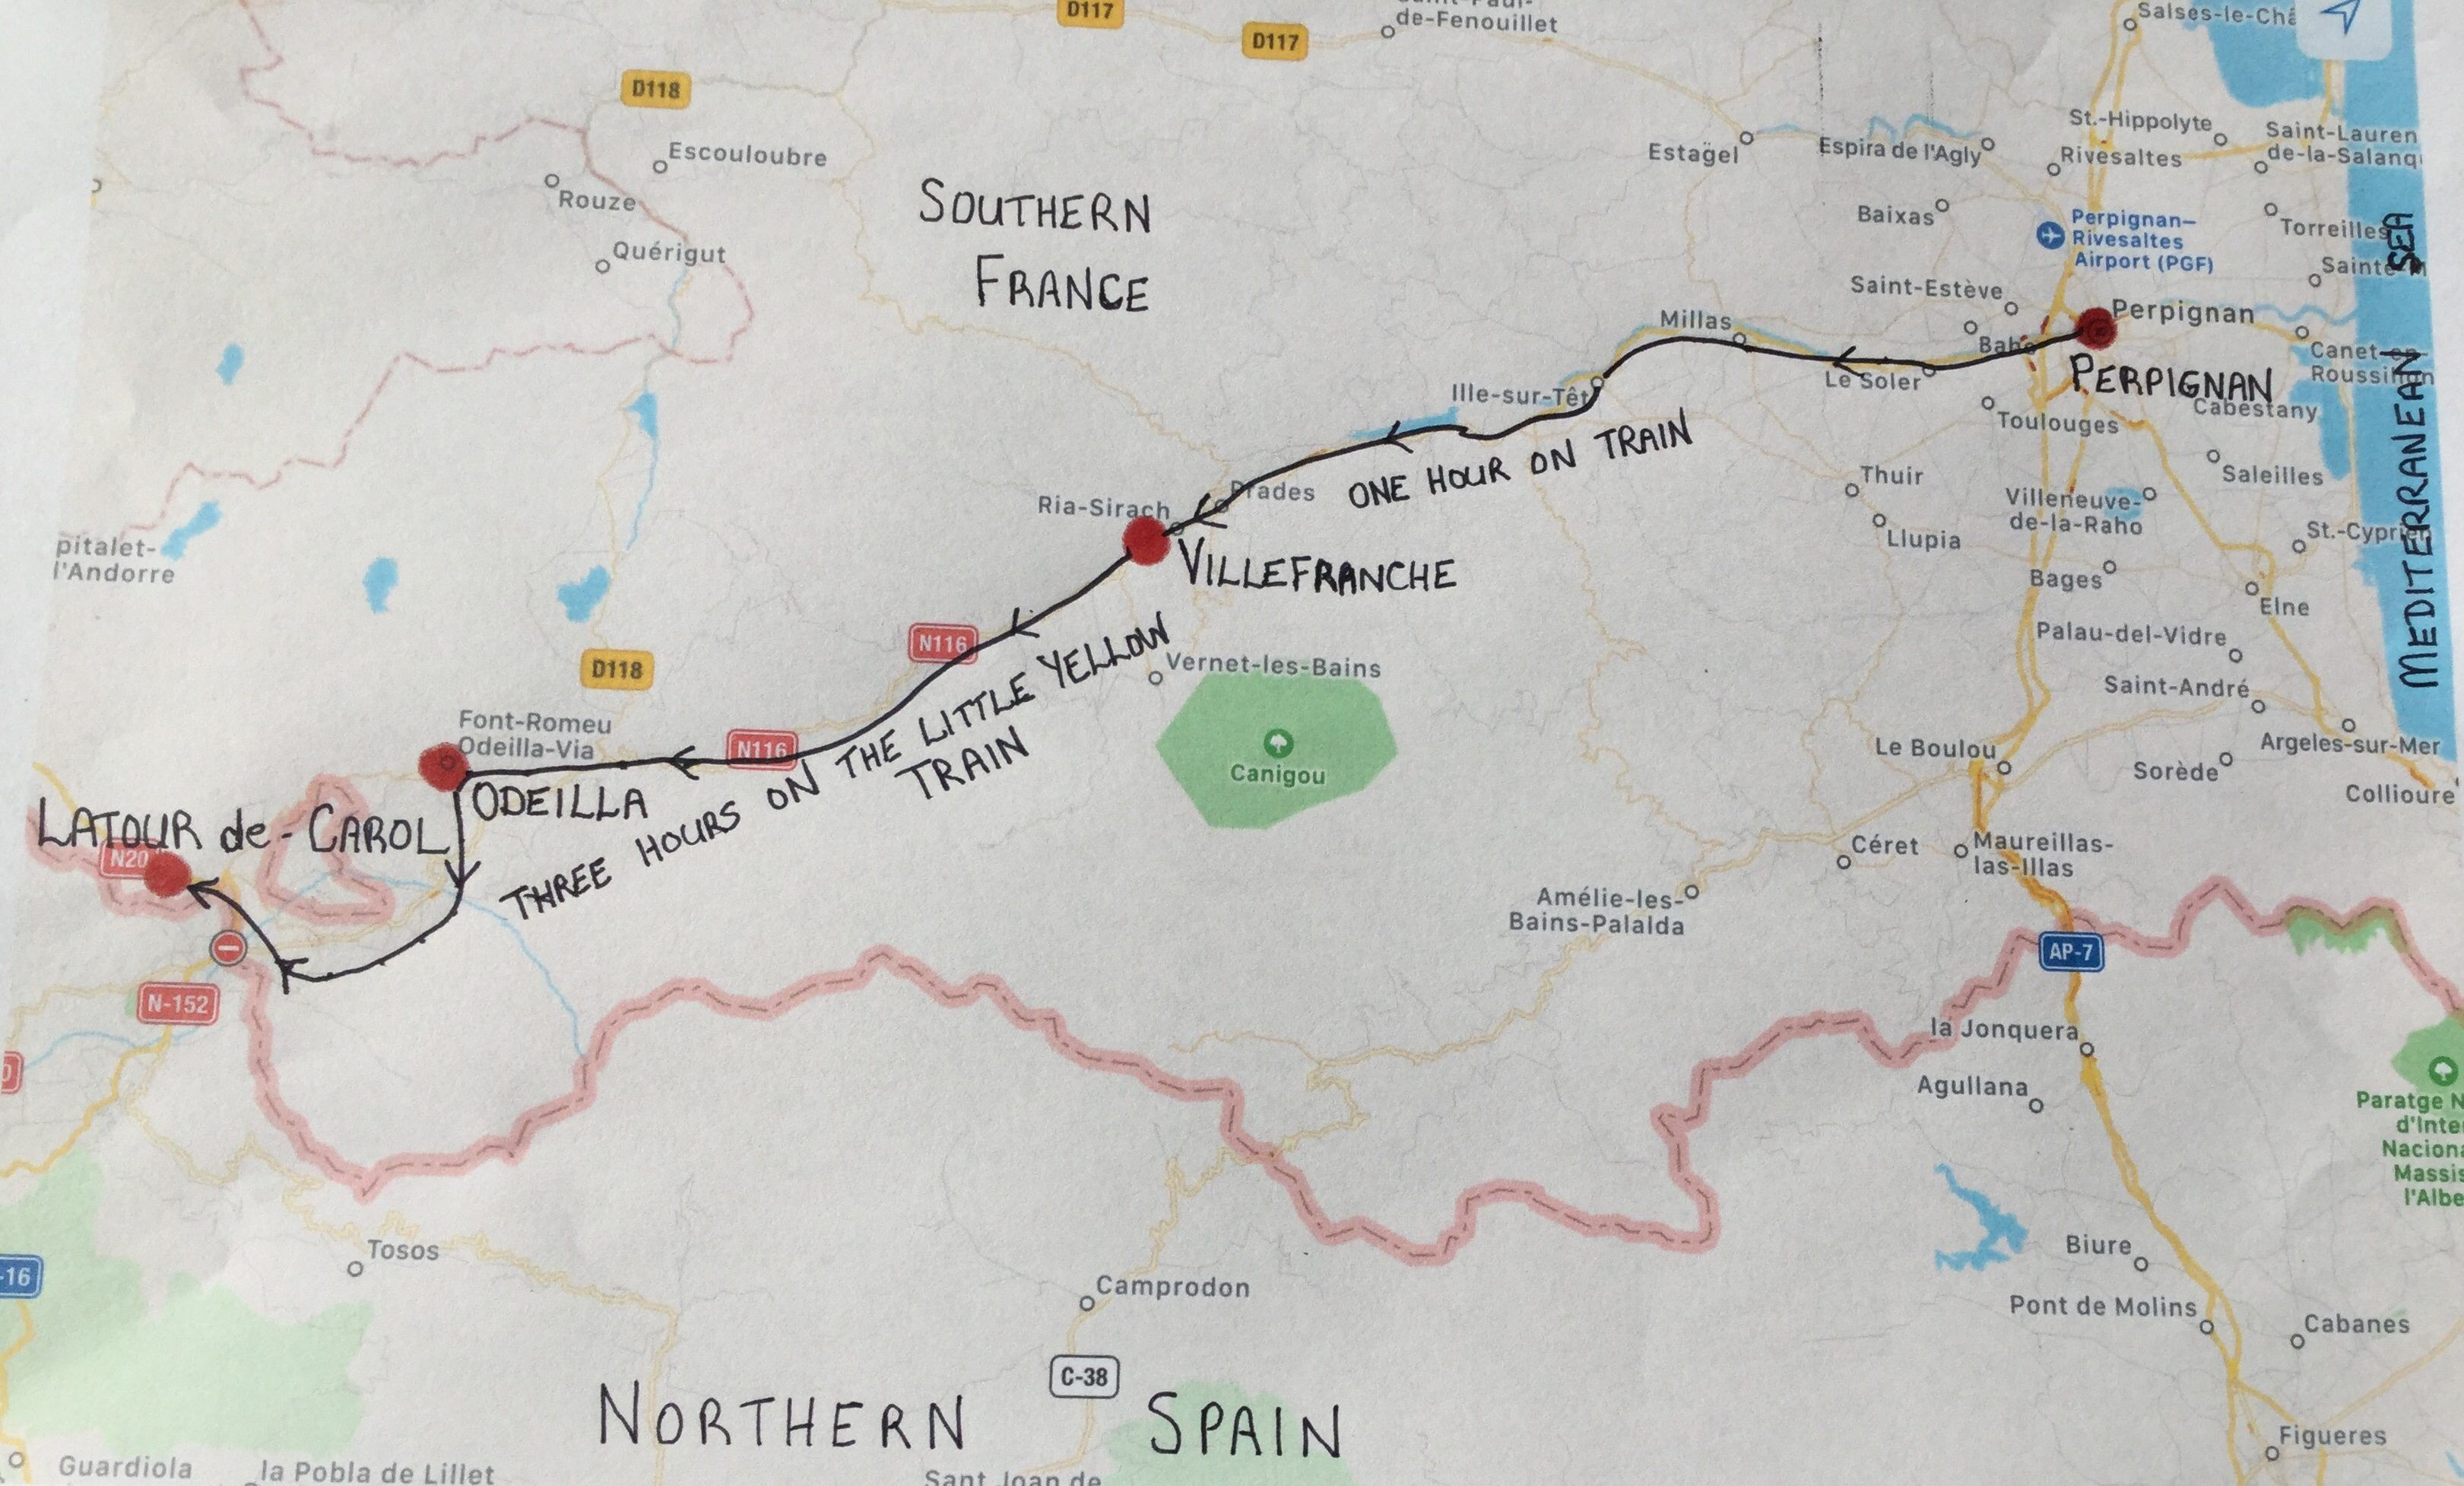 Map Of Southern France And Spain.Pyrenees Southern France The Little Yellow Train France Trip